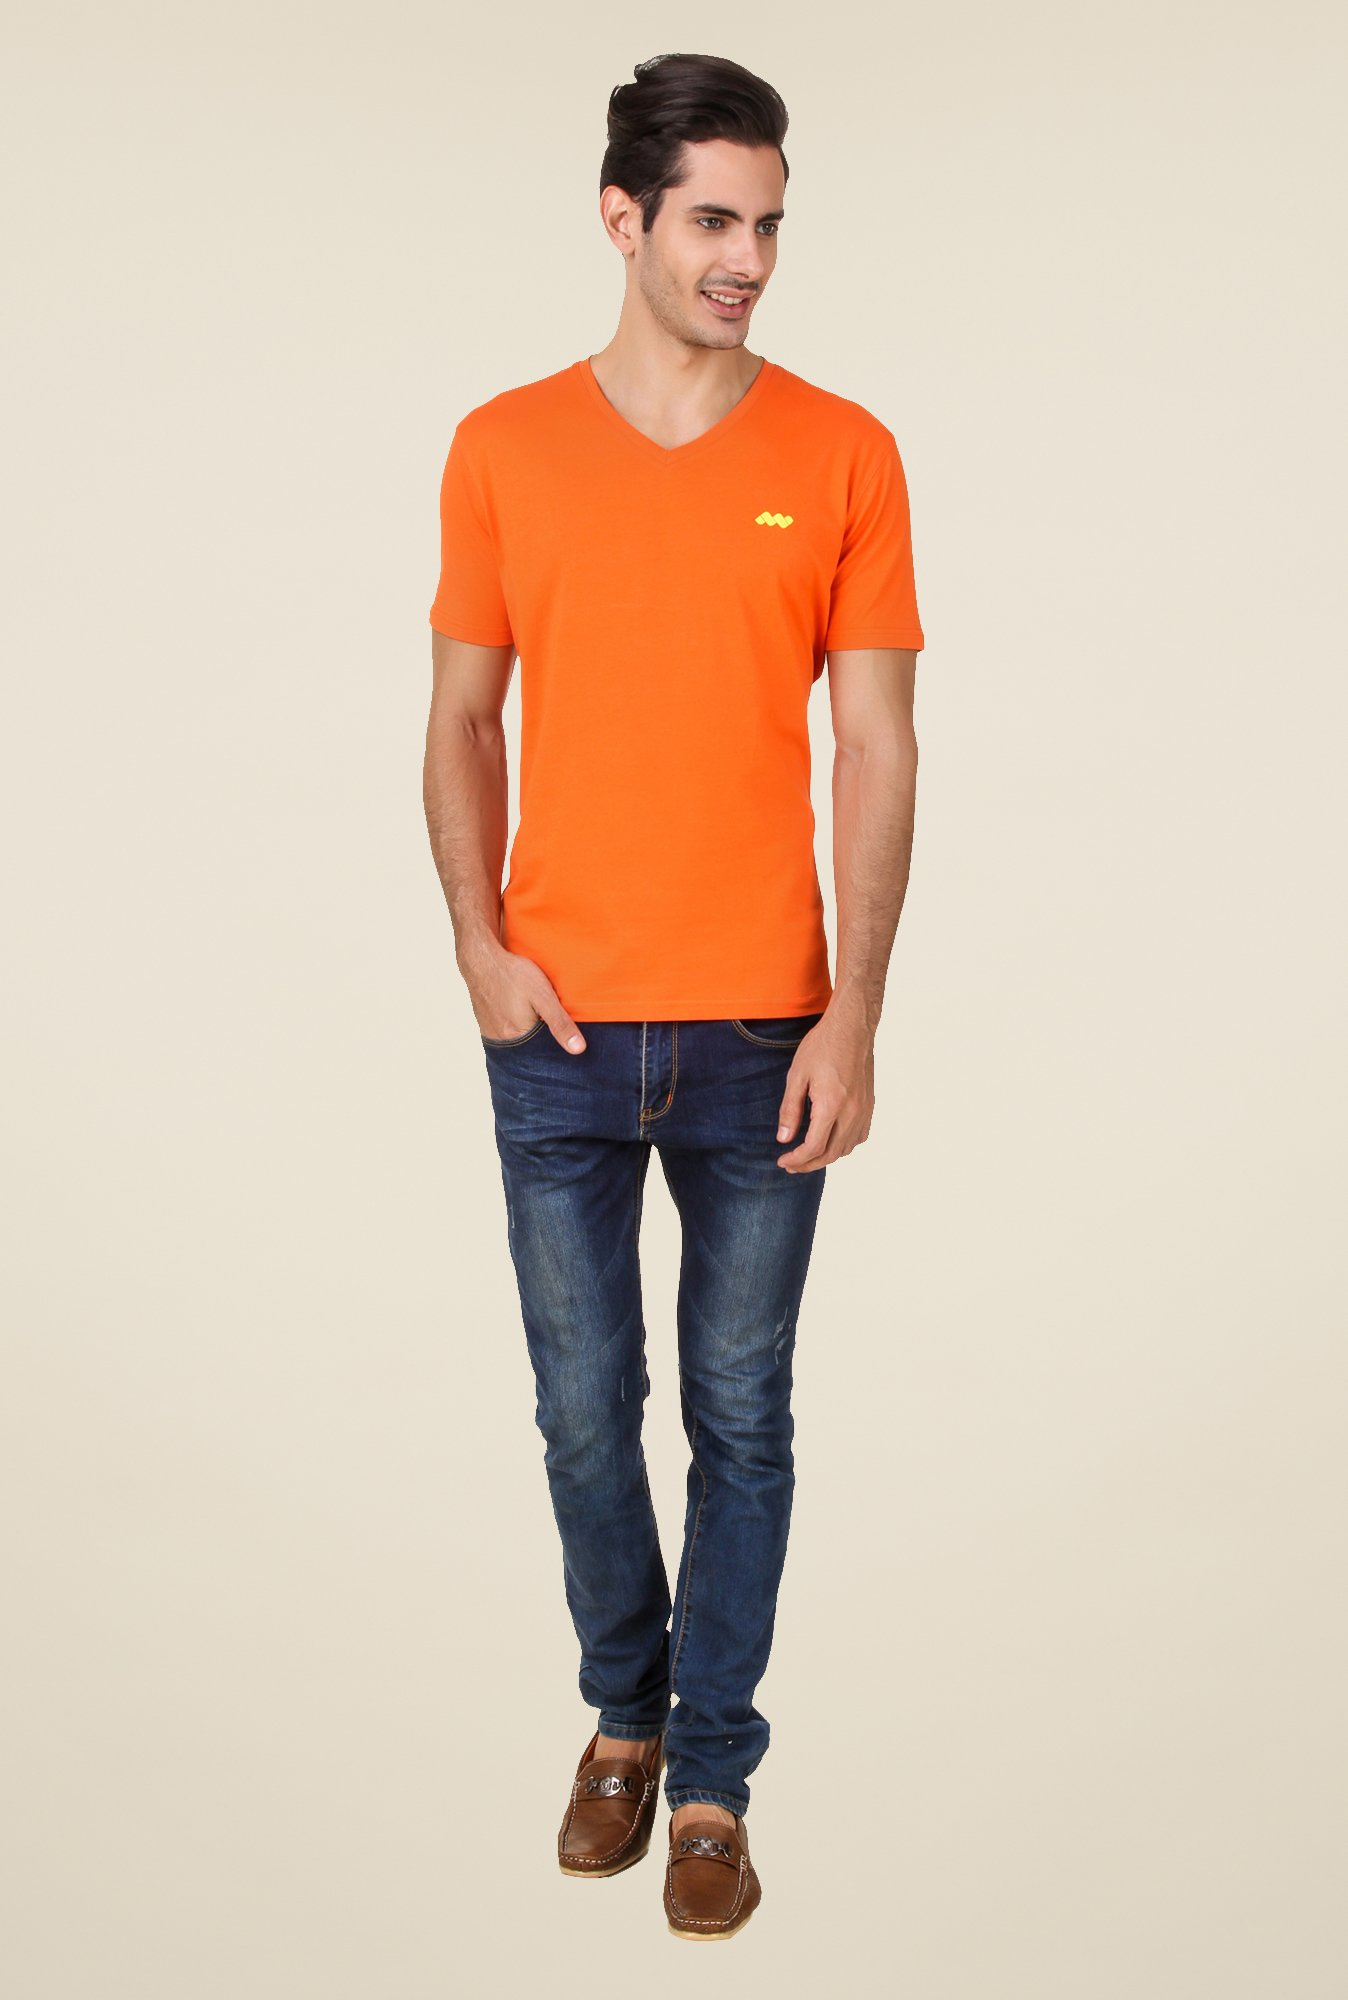 Spunk Orange Solid T Shirt